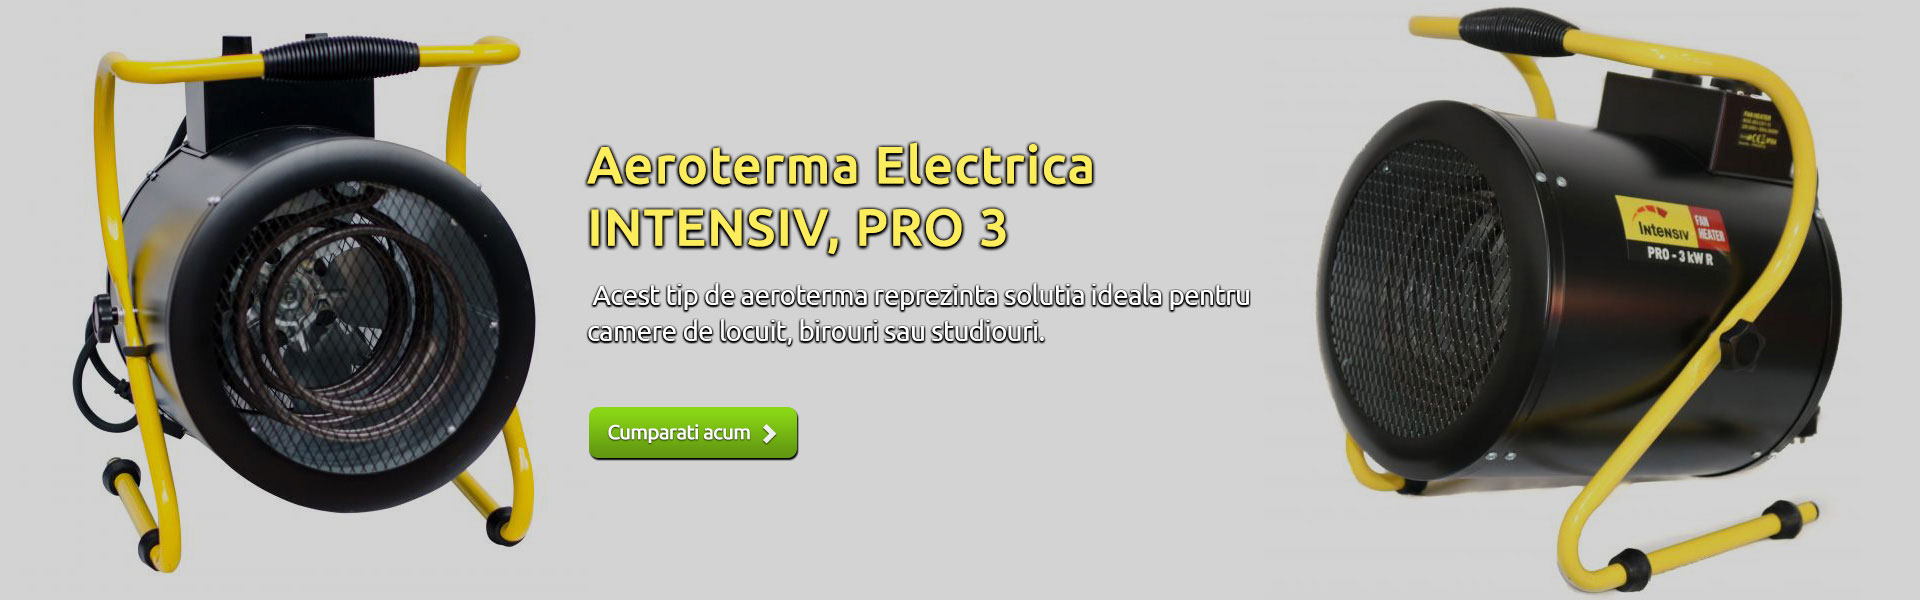 Aeroterma electrica Intensiv, Pro 3 KW R, 230 V, 60 m3